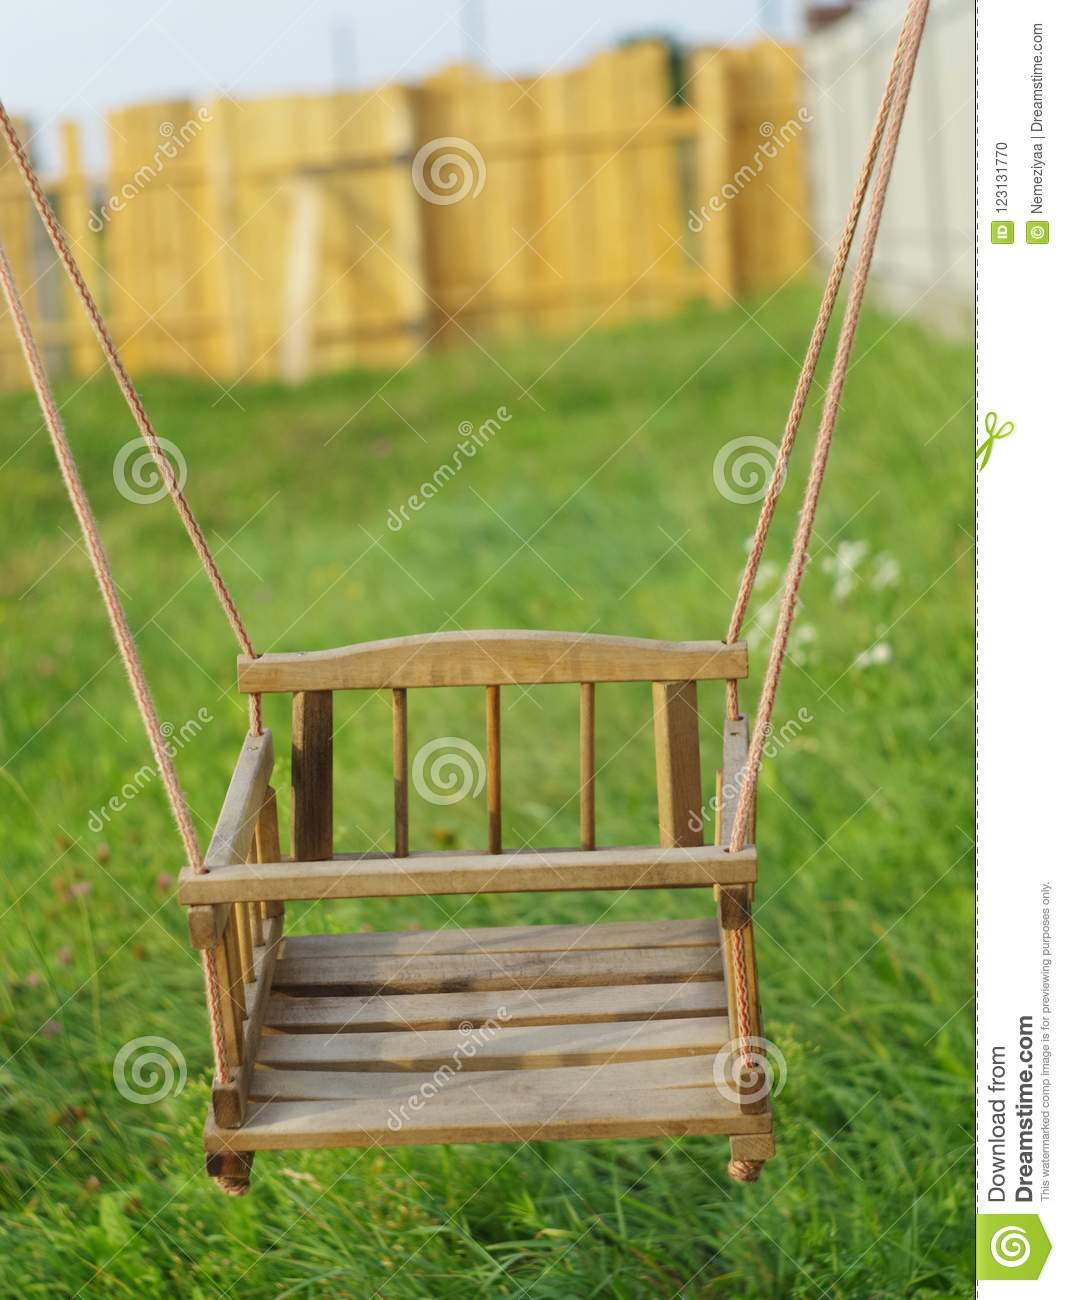 Children S Wooden Rope Swing Stock Photo Image Of Close Seat